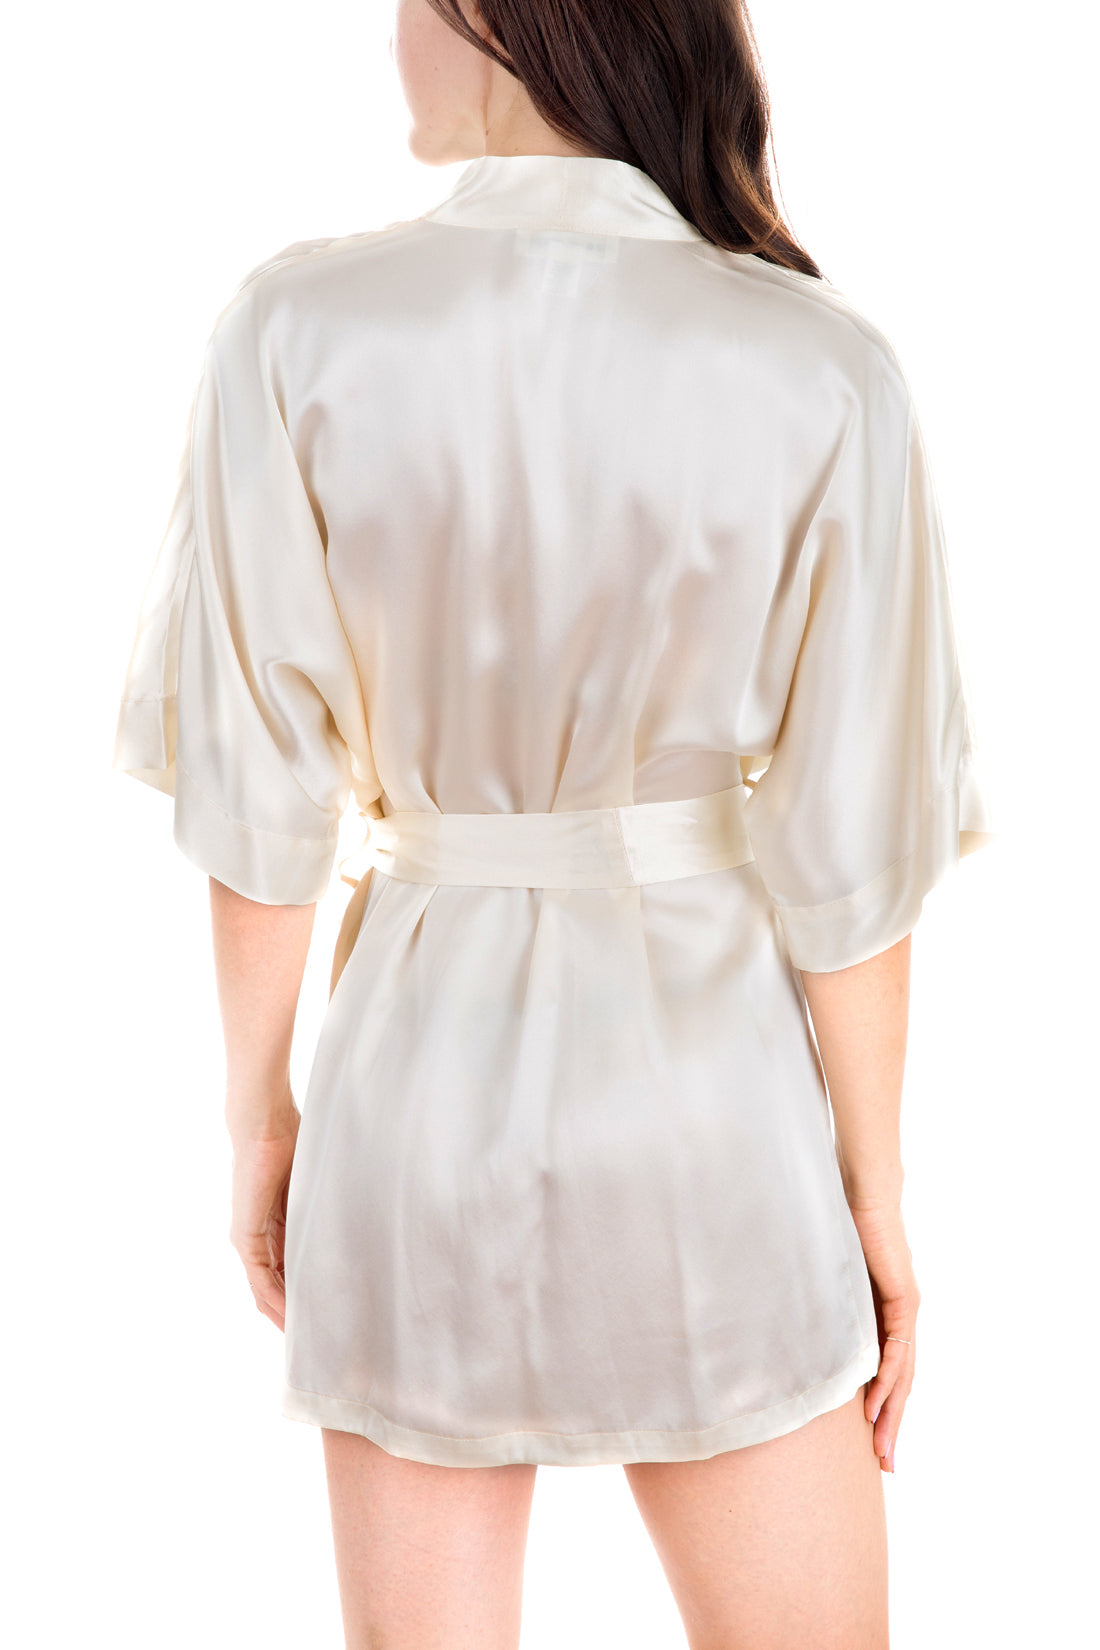 Women's Silk Sleepwear 100% Silk Short Robe -OSCAR ROSSA